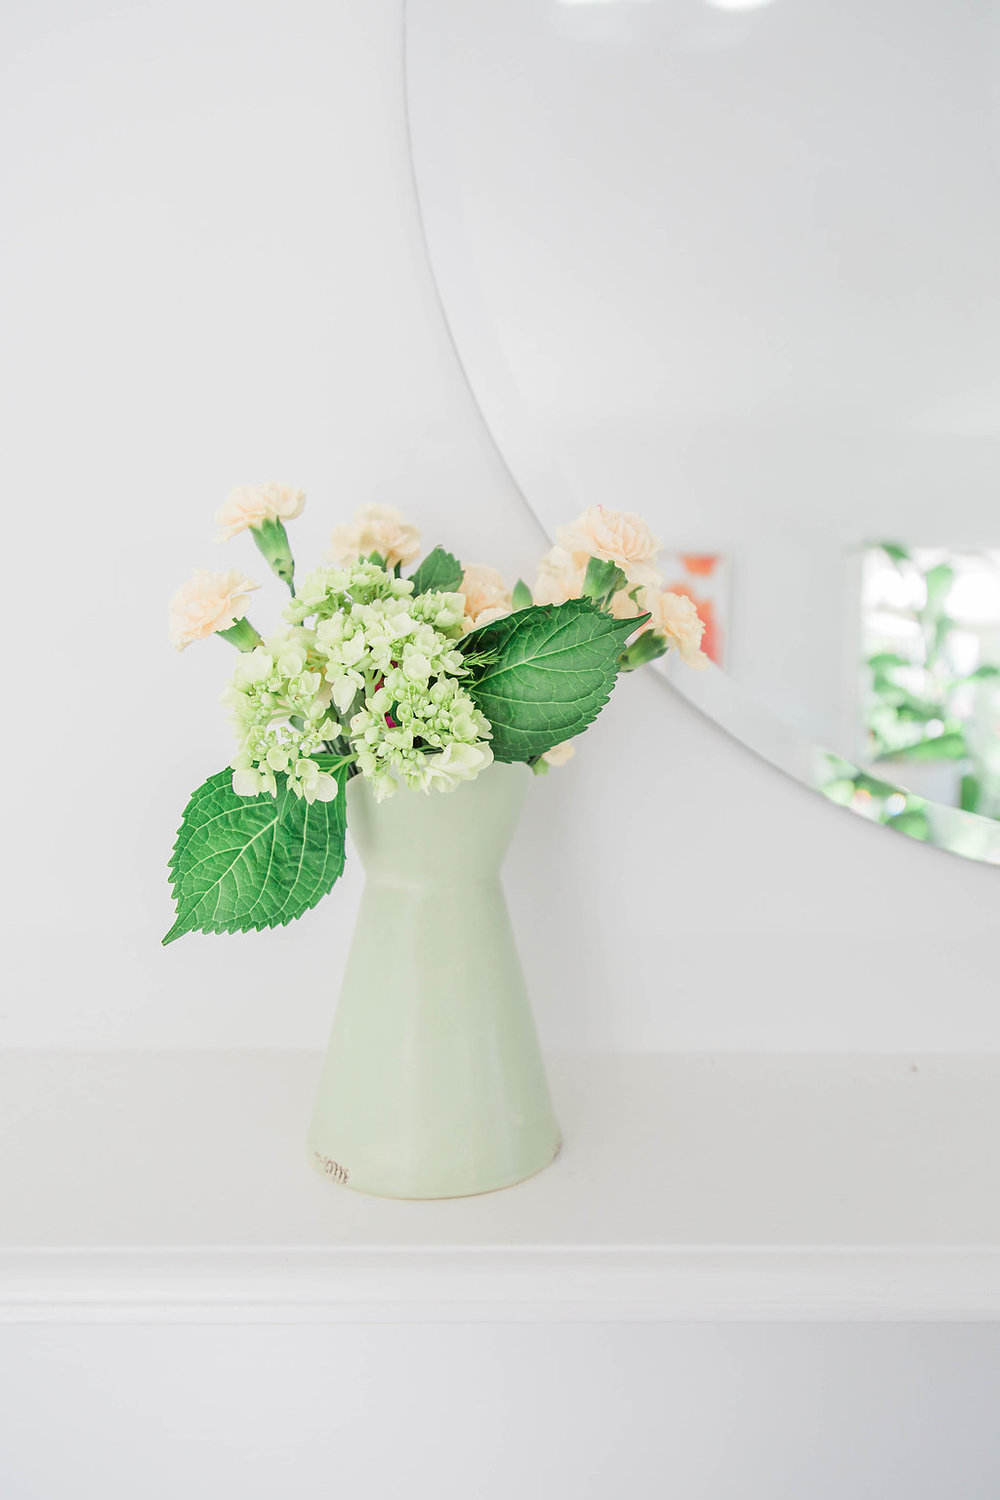 Hydrangeas from the yard | Interior Design | Dreamy White Lifestyle | Living Room Goals | Dream White Home | Dream Home Tour | White House | Stunning Kitchen | As Featured in Style Me Pretty | SMP Living | Gorgeous Living Room Decor | How to Style Your Living Room